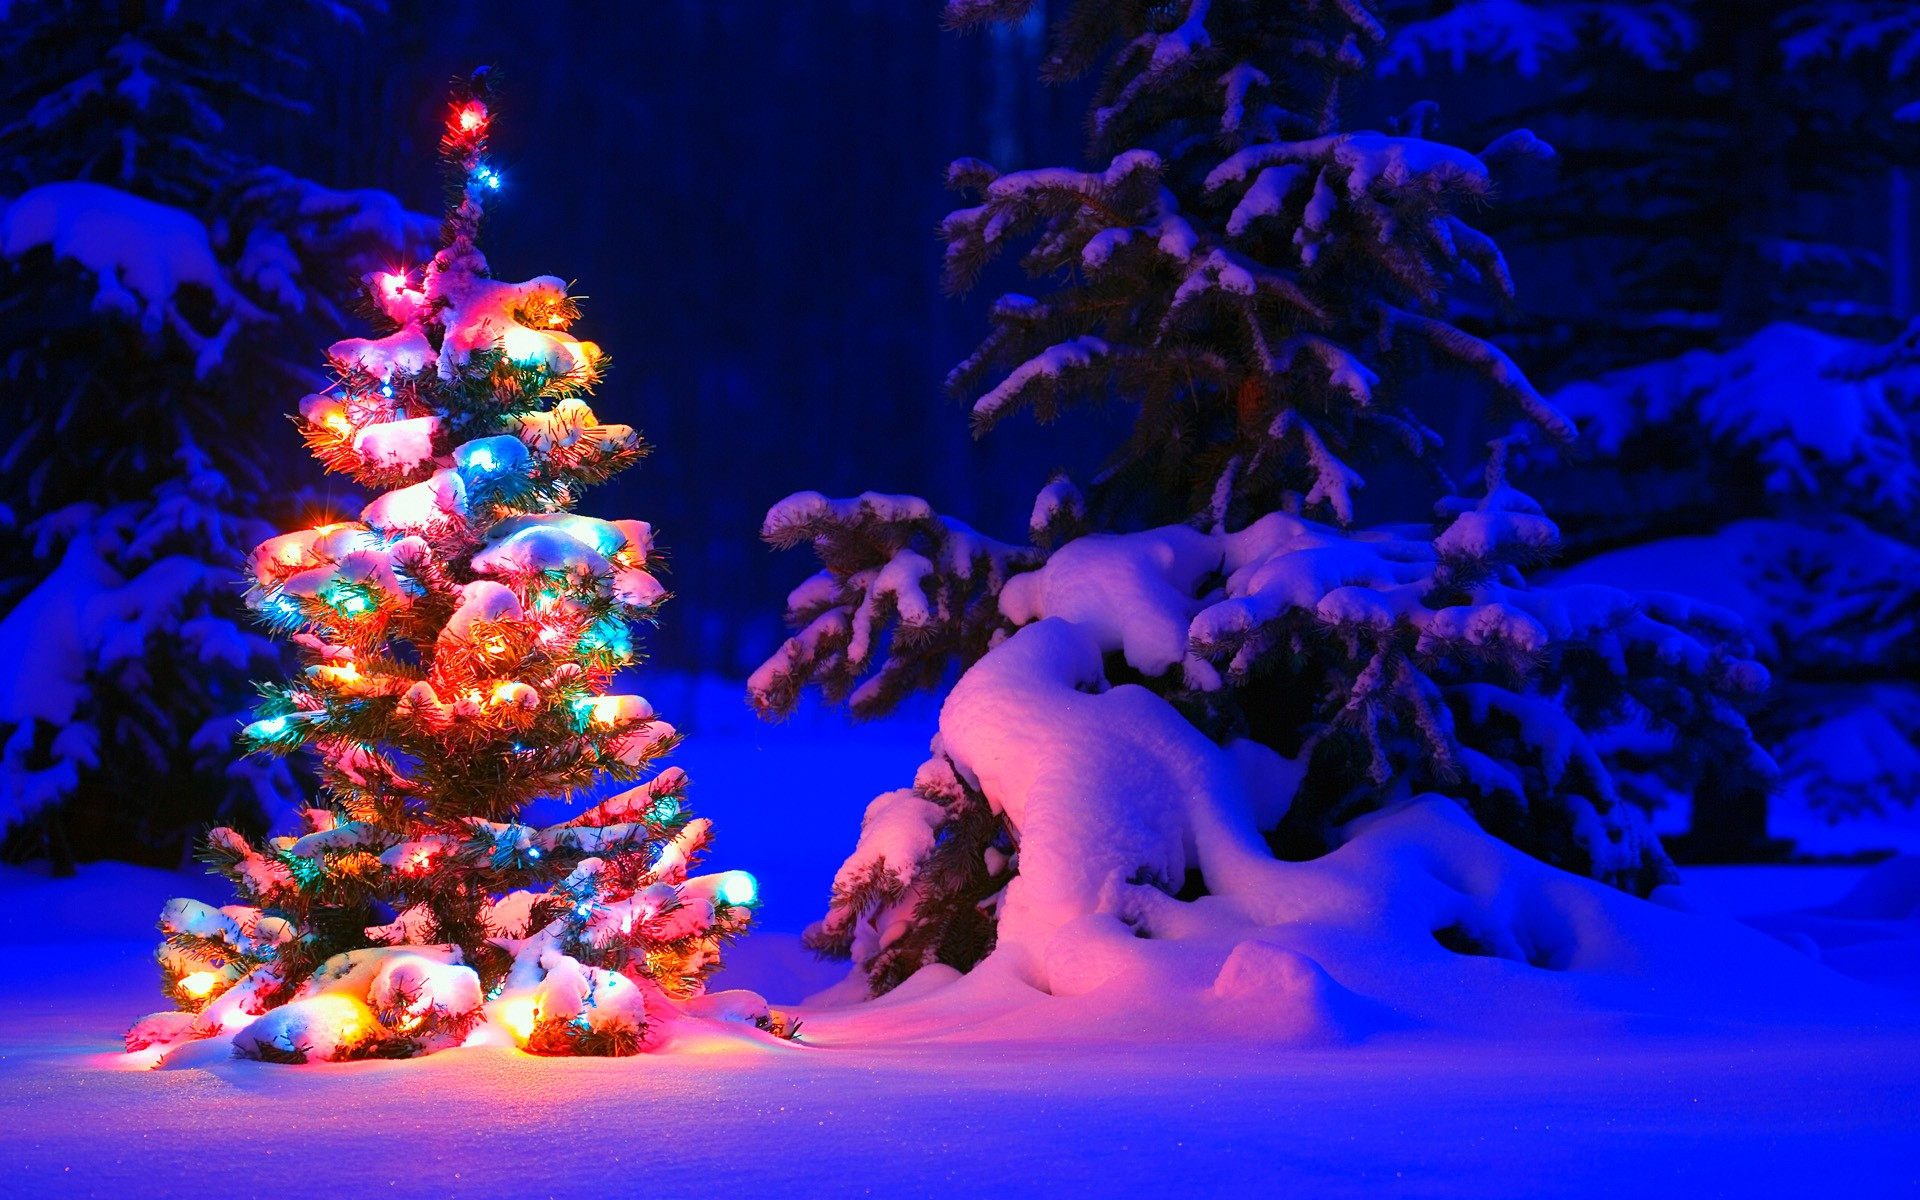 amazing christmas desktop backgrounds 1920x1080 - Free Christmas Desktop Backgrounds